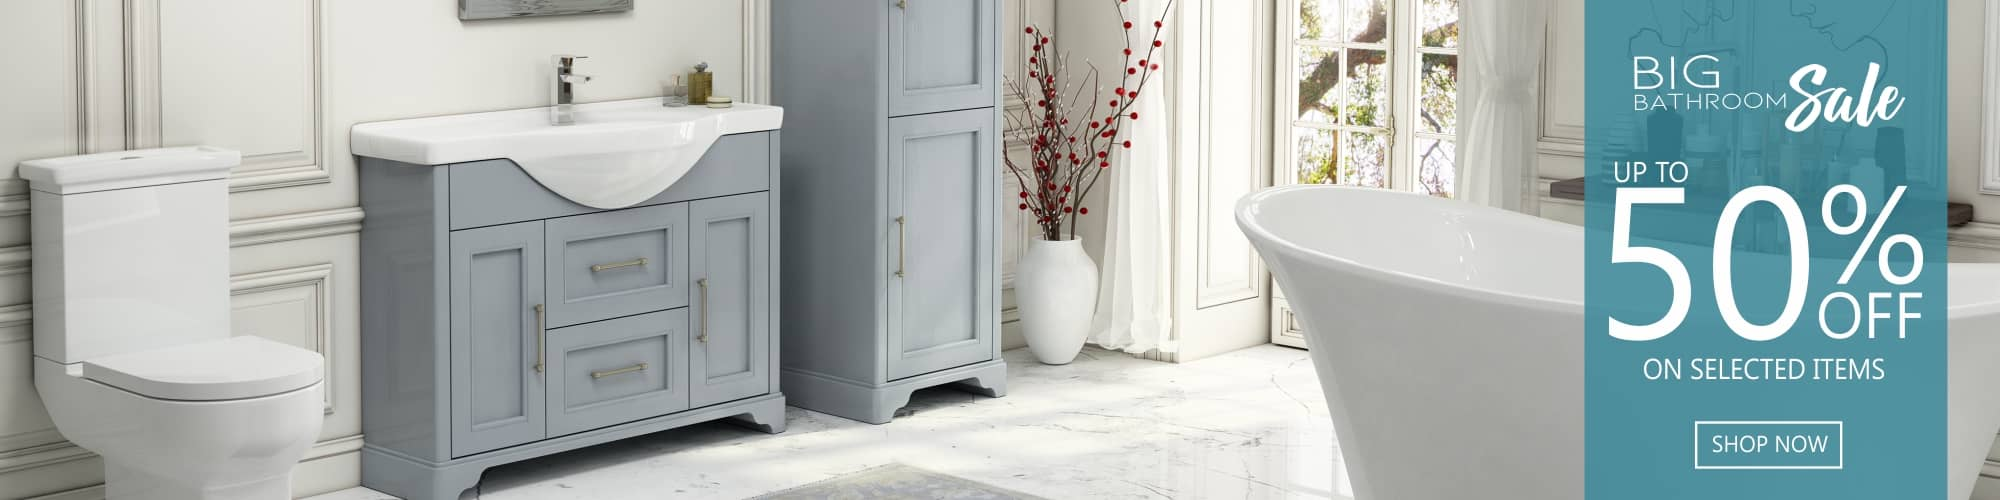 BIG Bathroom Sale - Up to 50% off on selected items - Shop Now